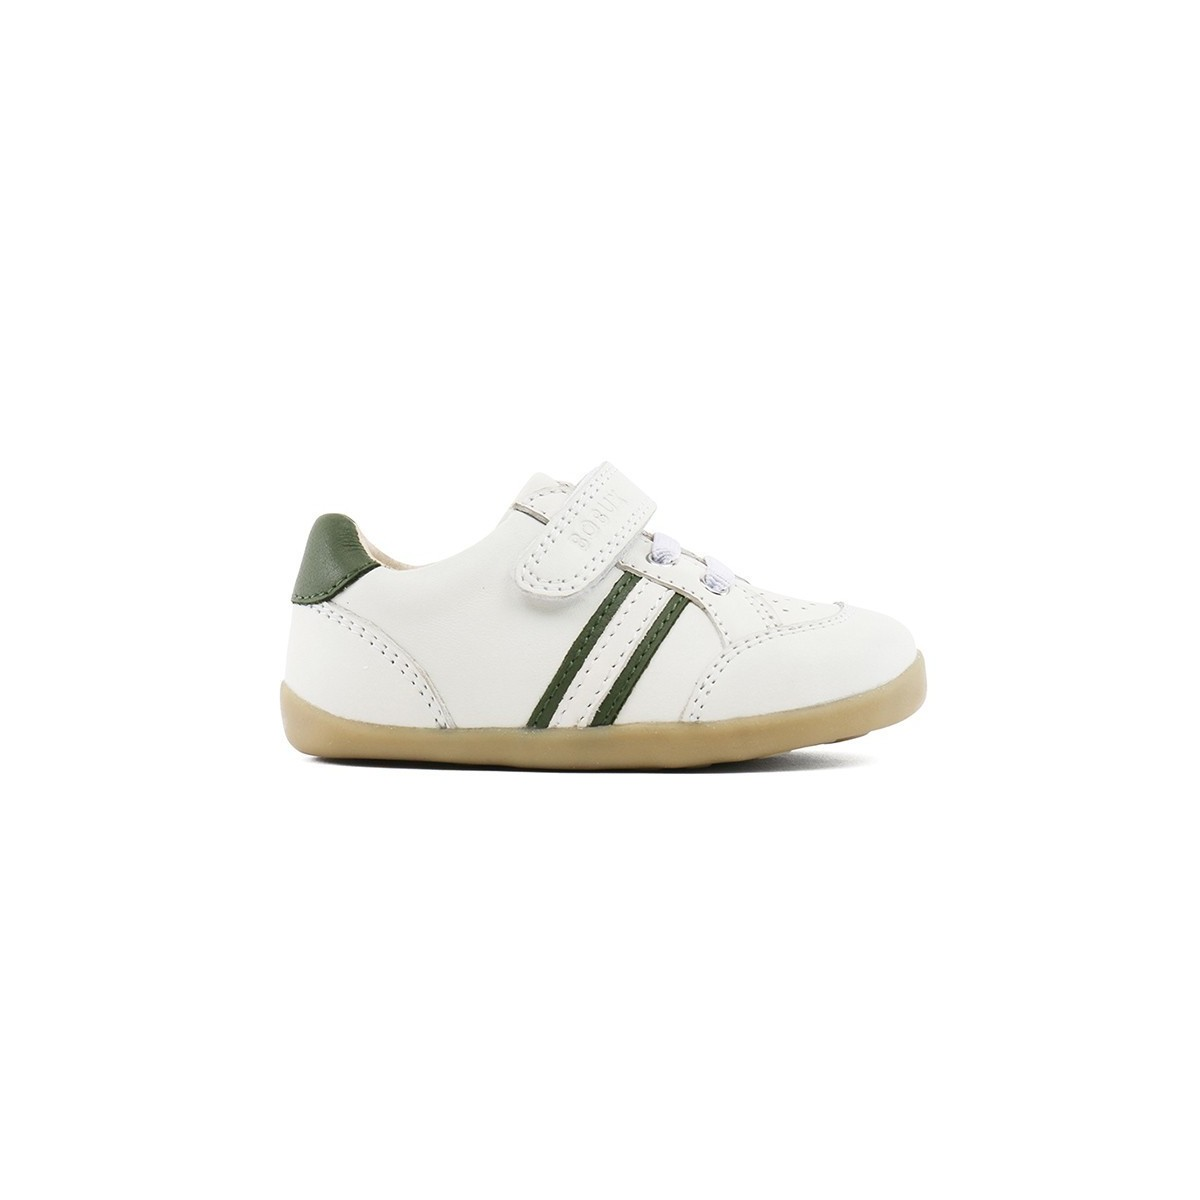 Step up basket basse en cuir blanc/vert